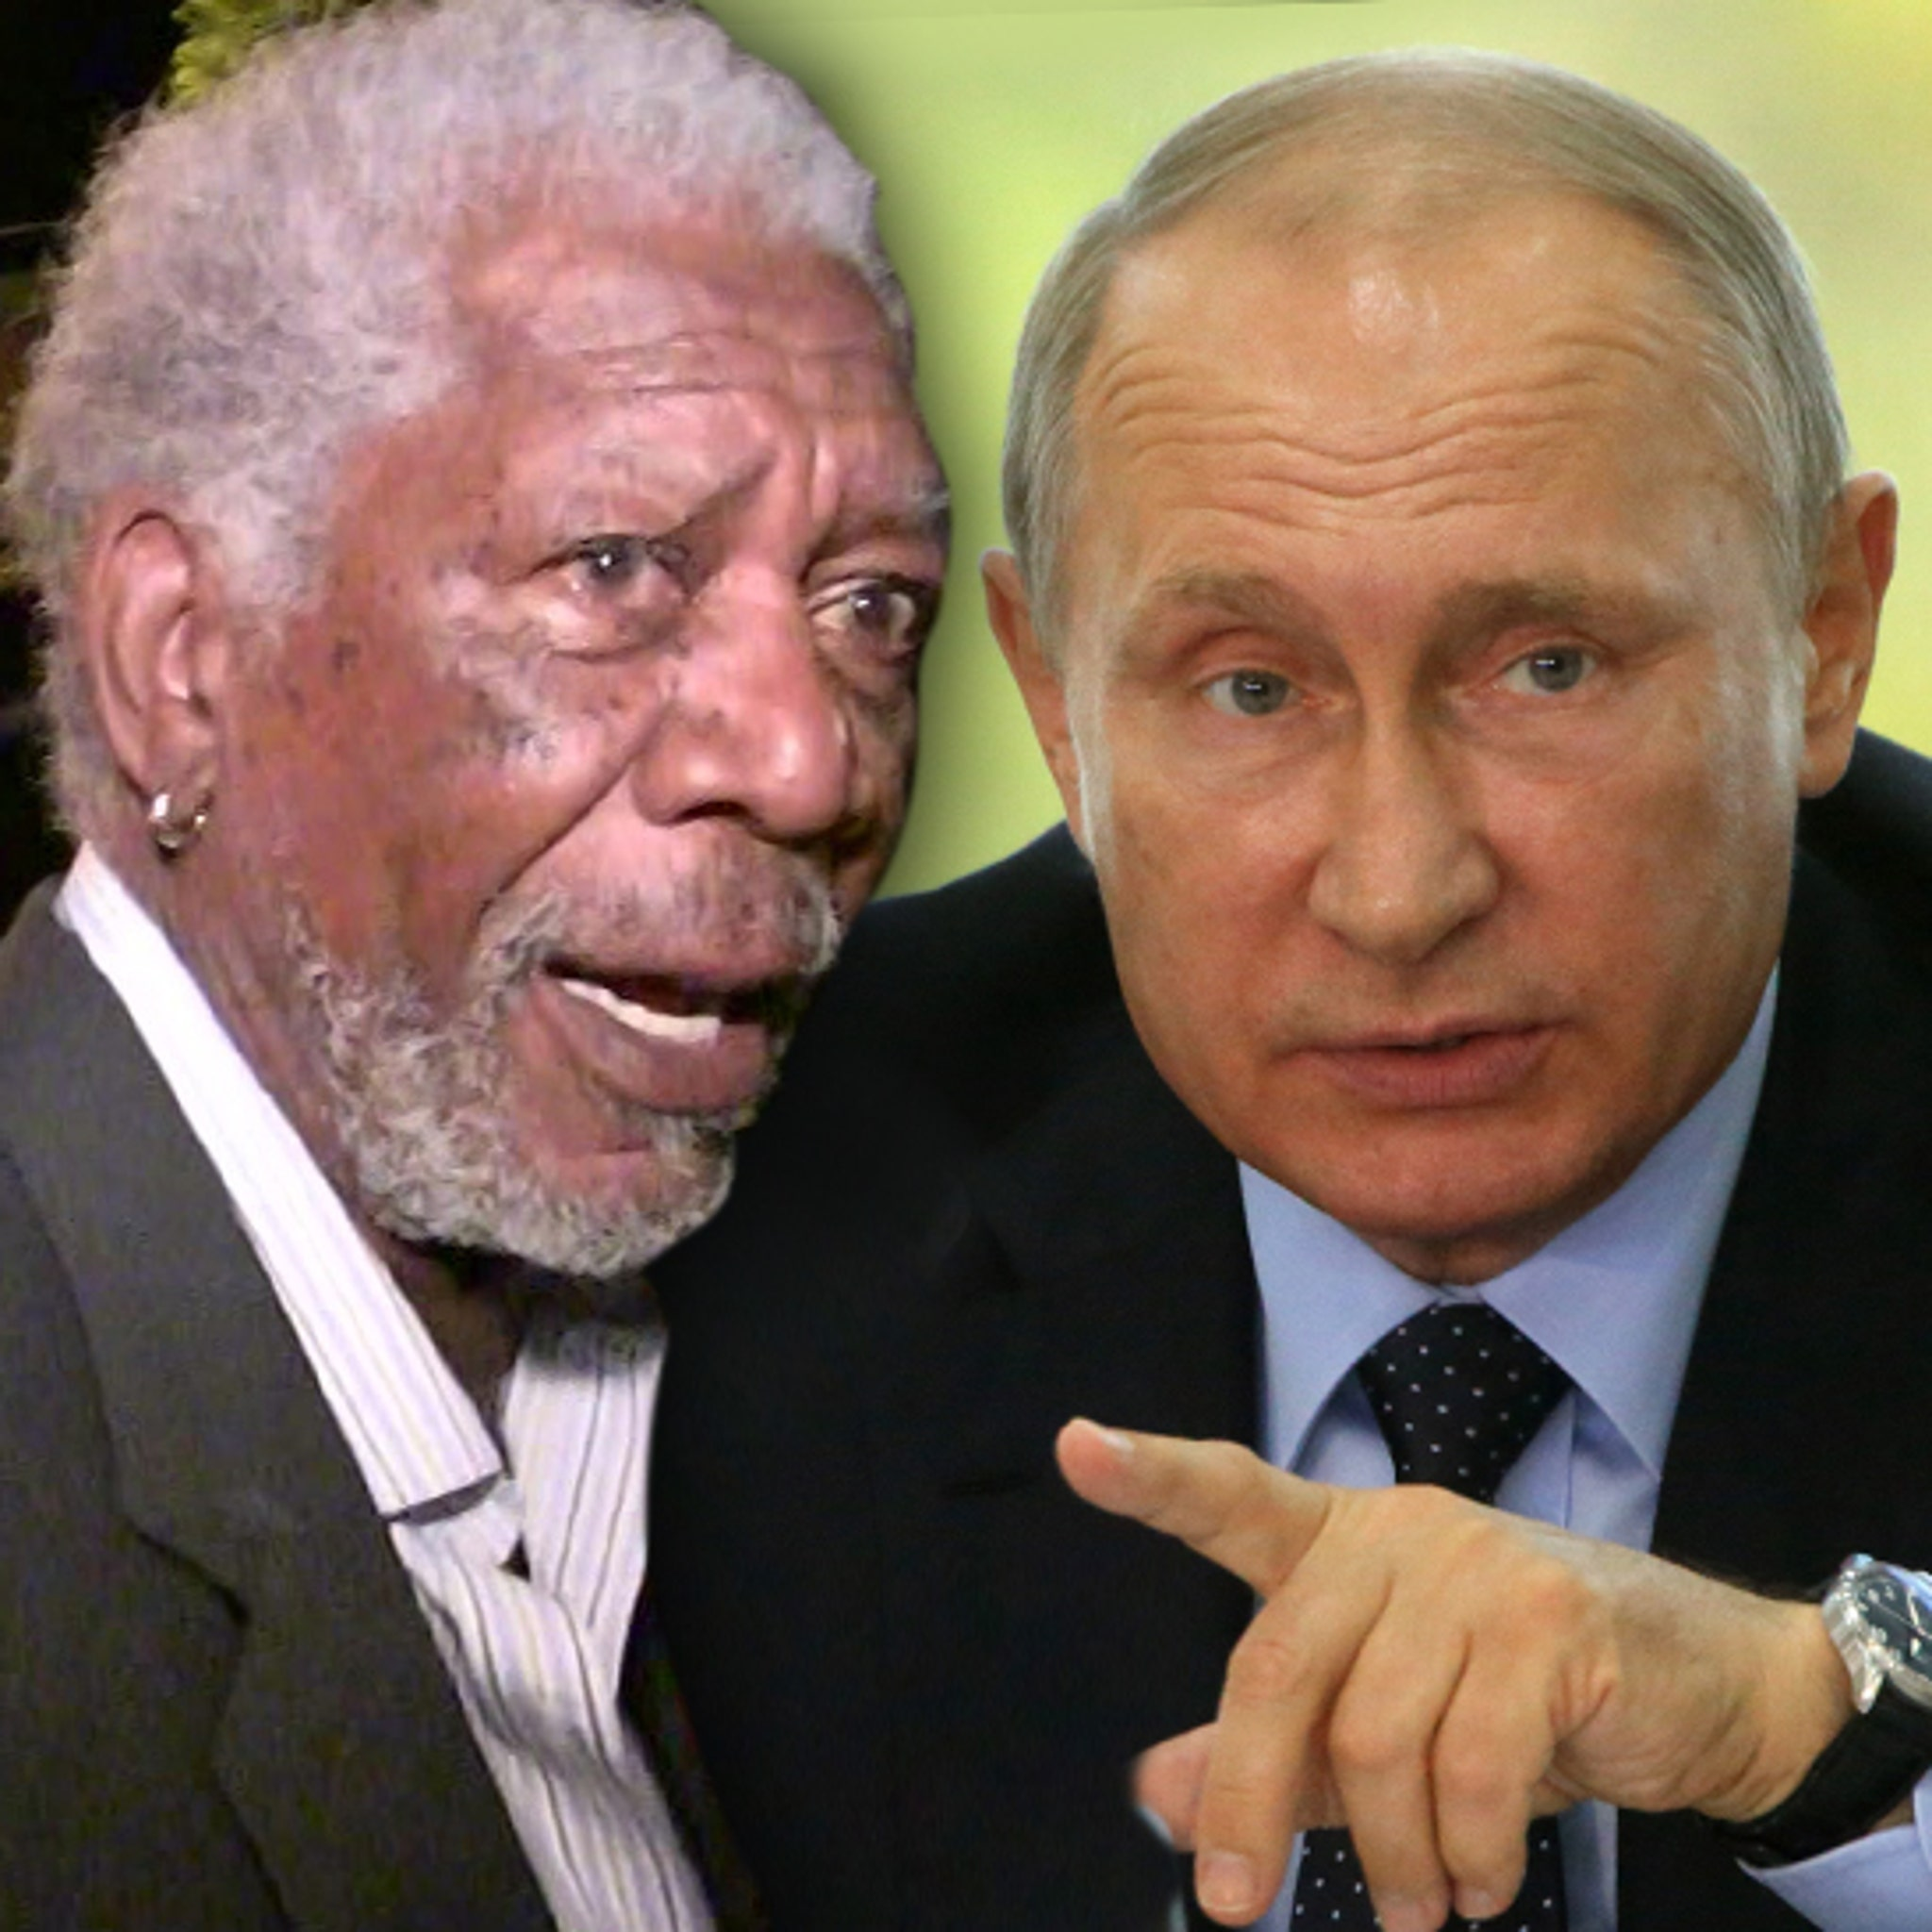 Morgan Freeman Pisses Off All Of Russia With Anti Putin Video Says Russian News